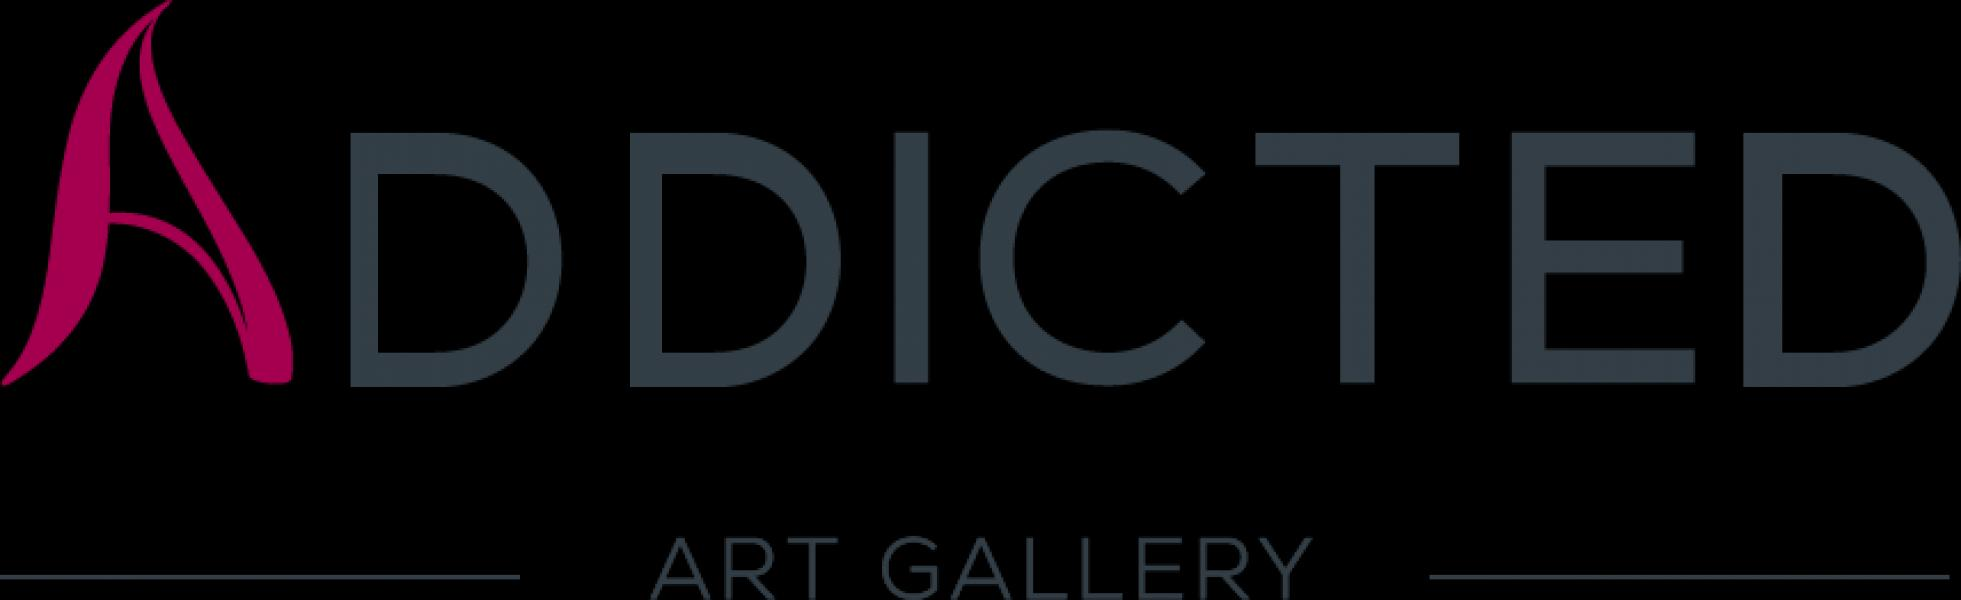 Addicted Art Gallery